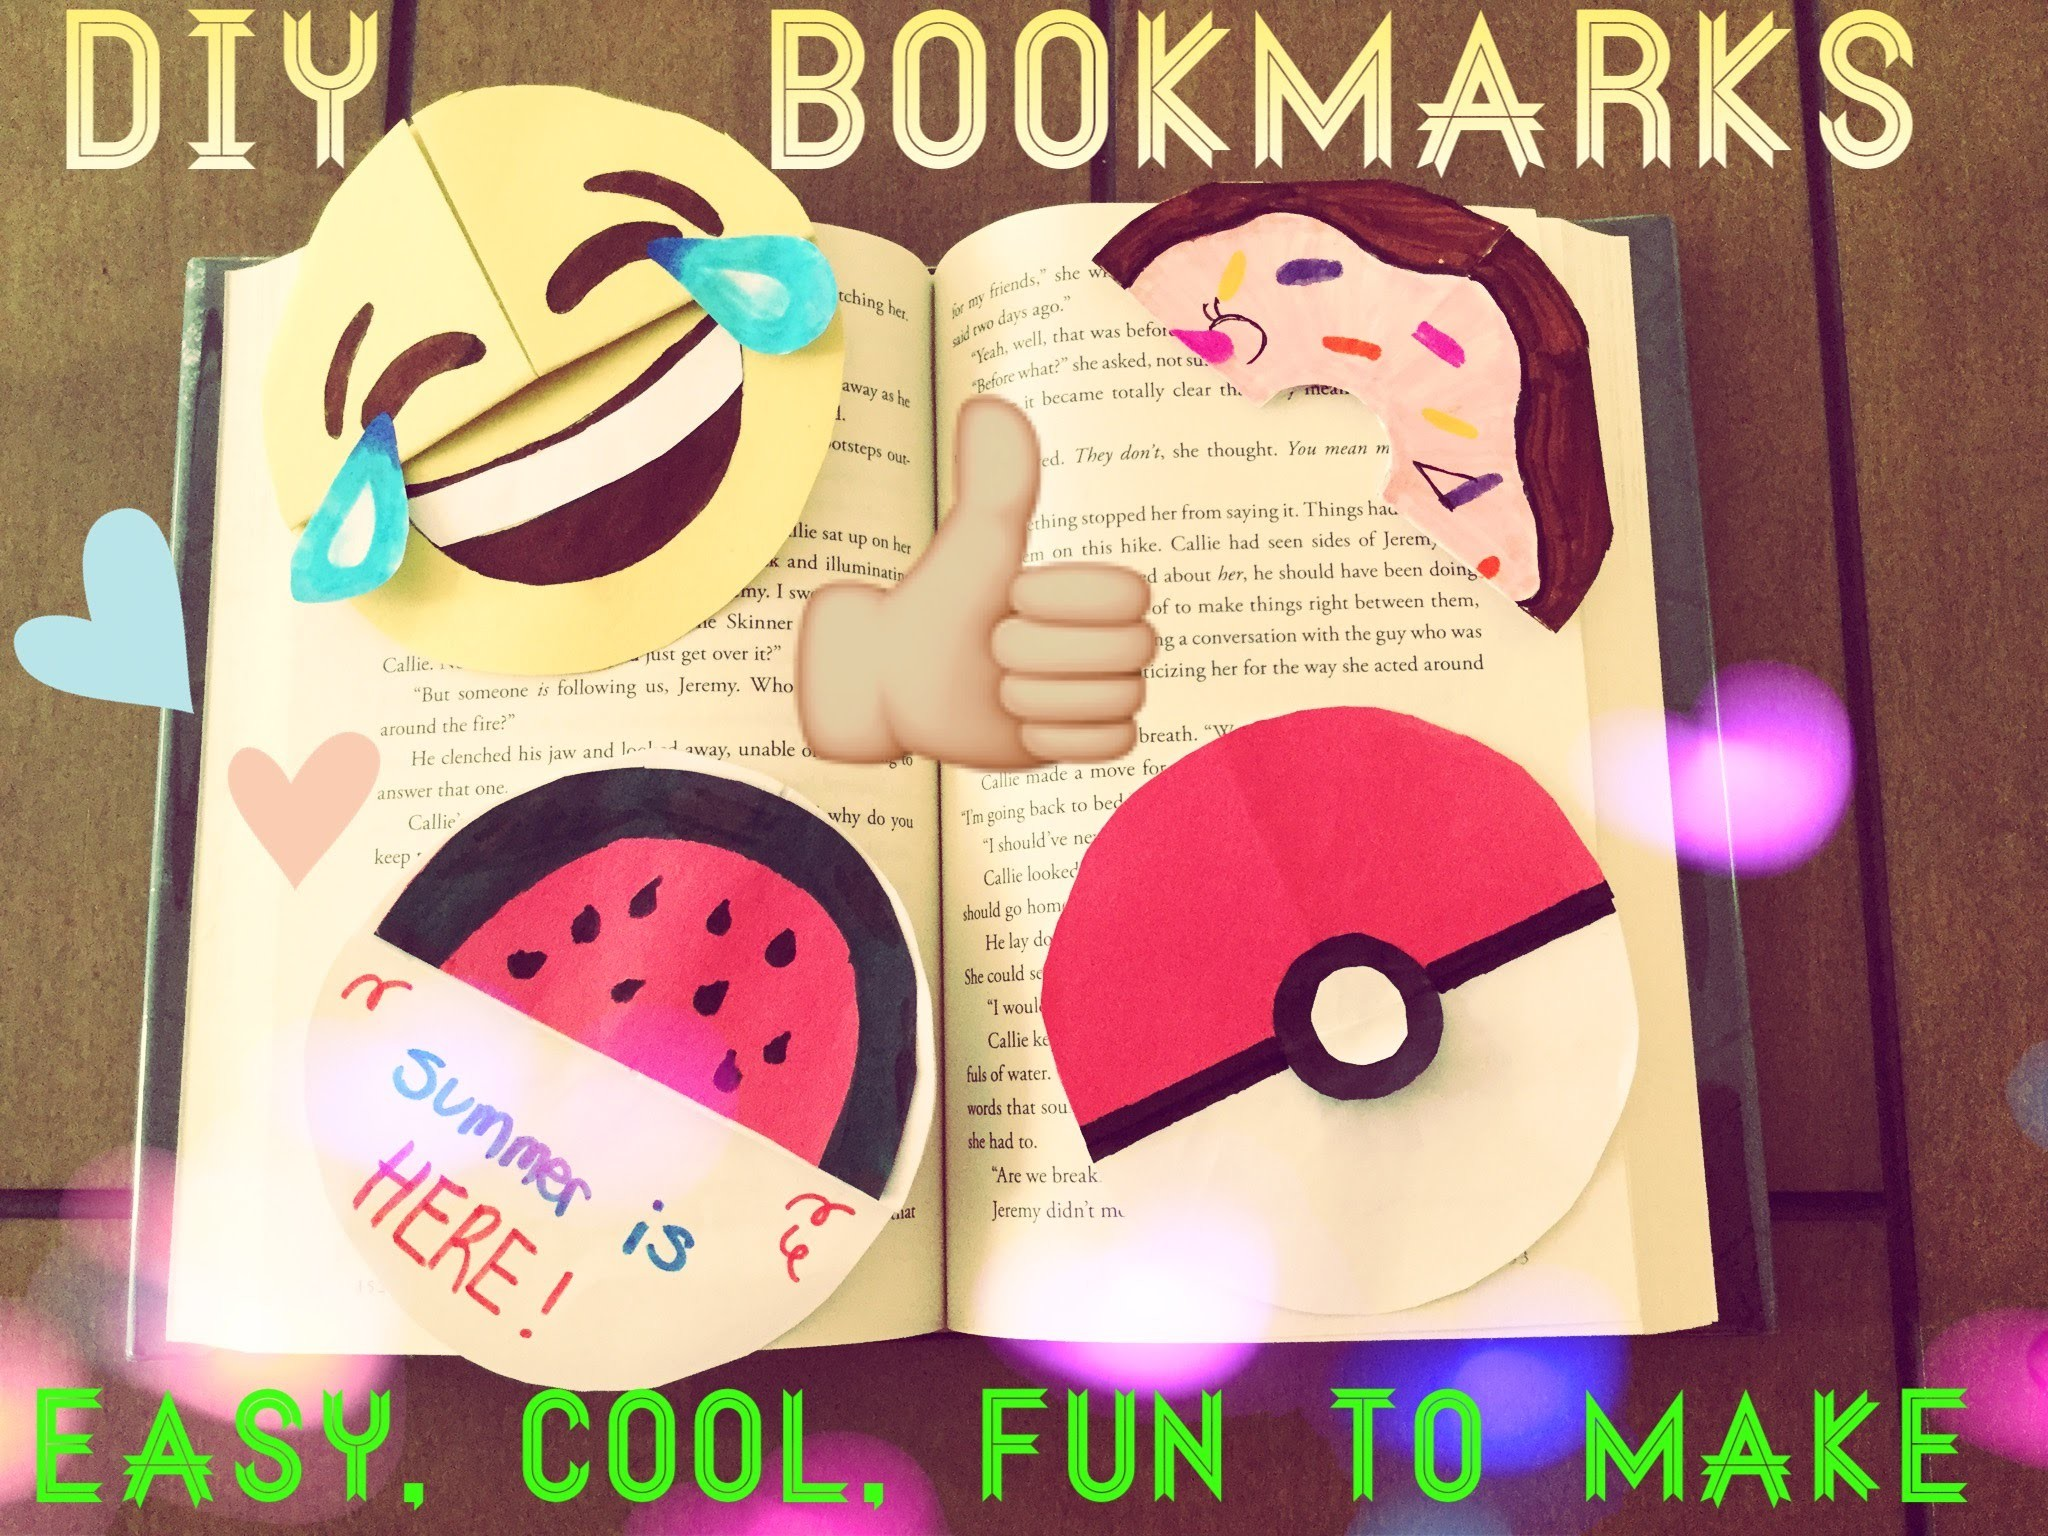 DIY circle bookmarks for kids super easy [tutorial]